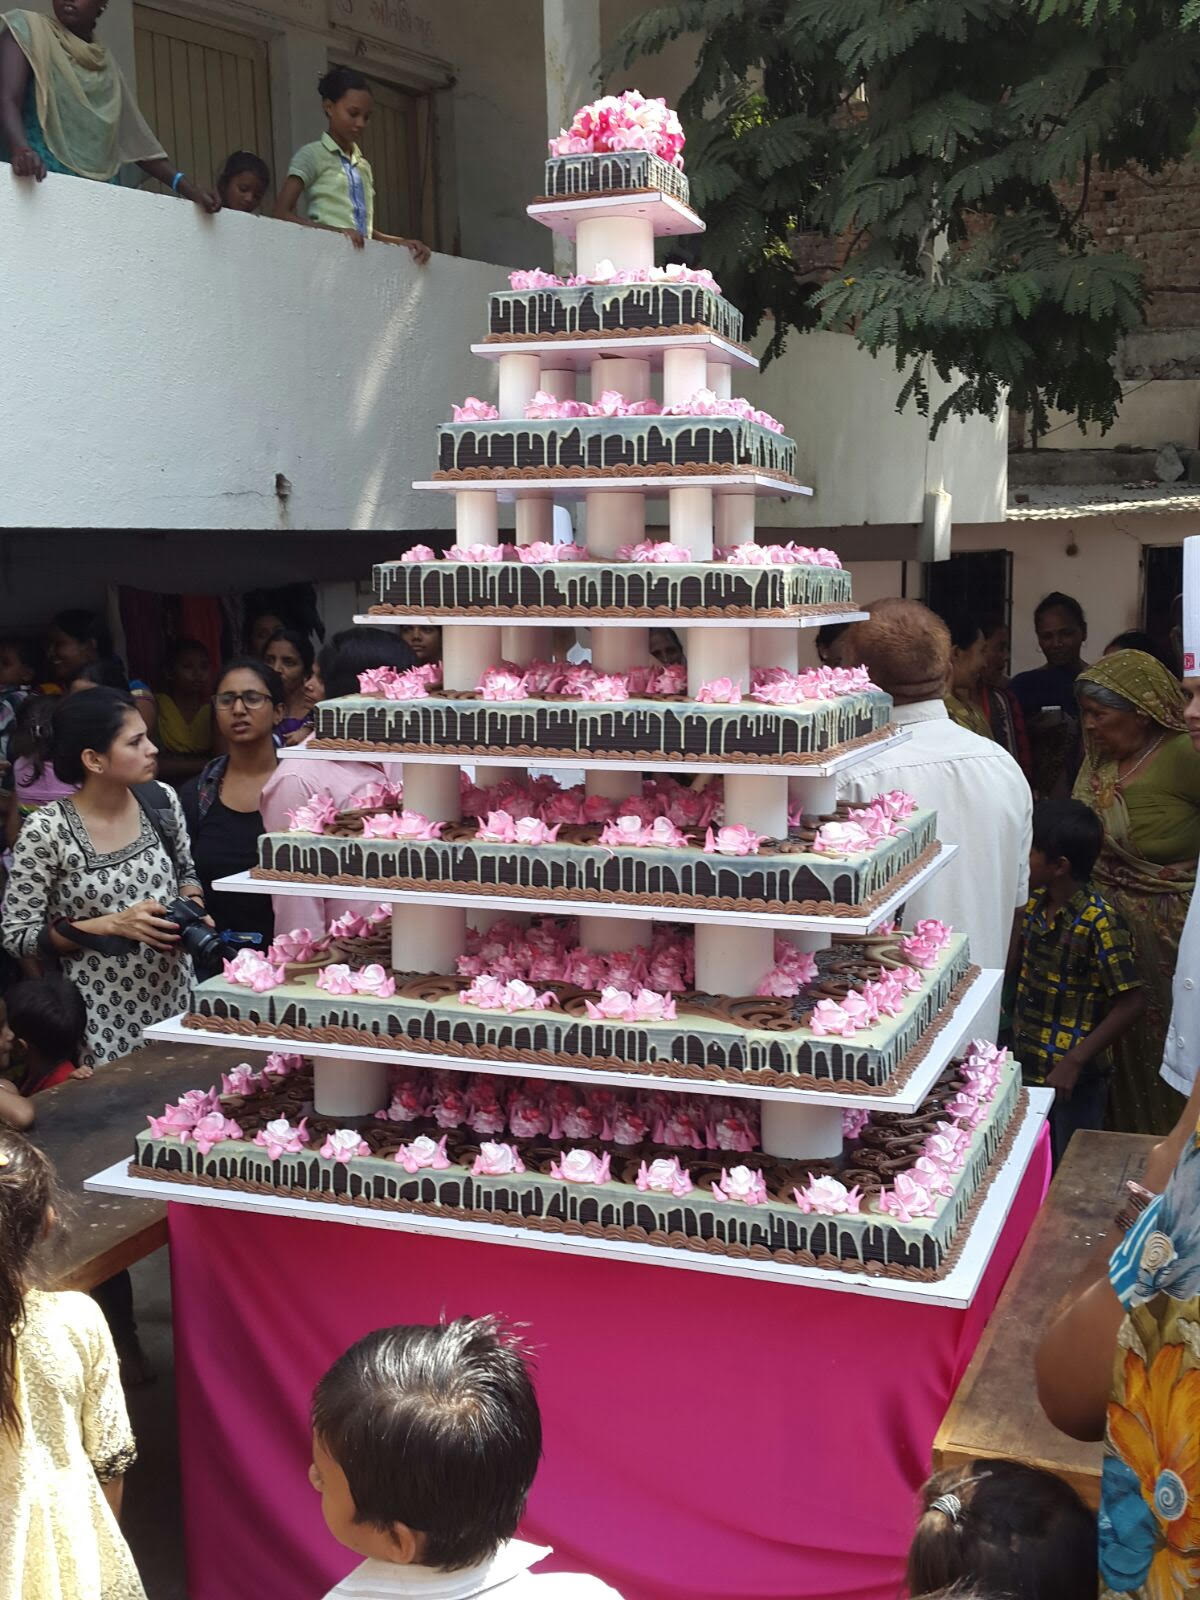 As a run up to SBI Pinkathon, a 222kg pink cake gifted to slum dwellers in Ahmedabad